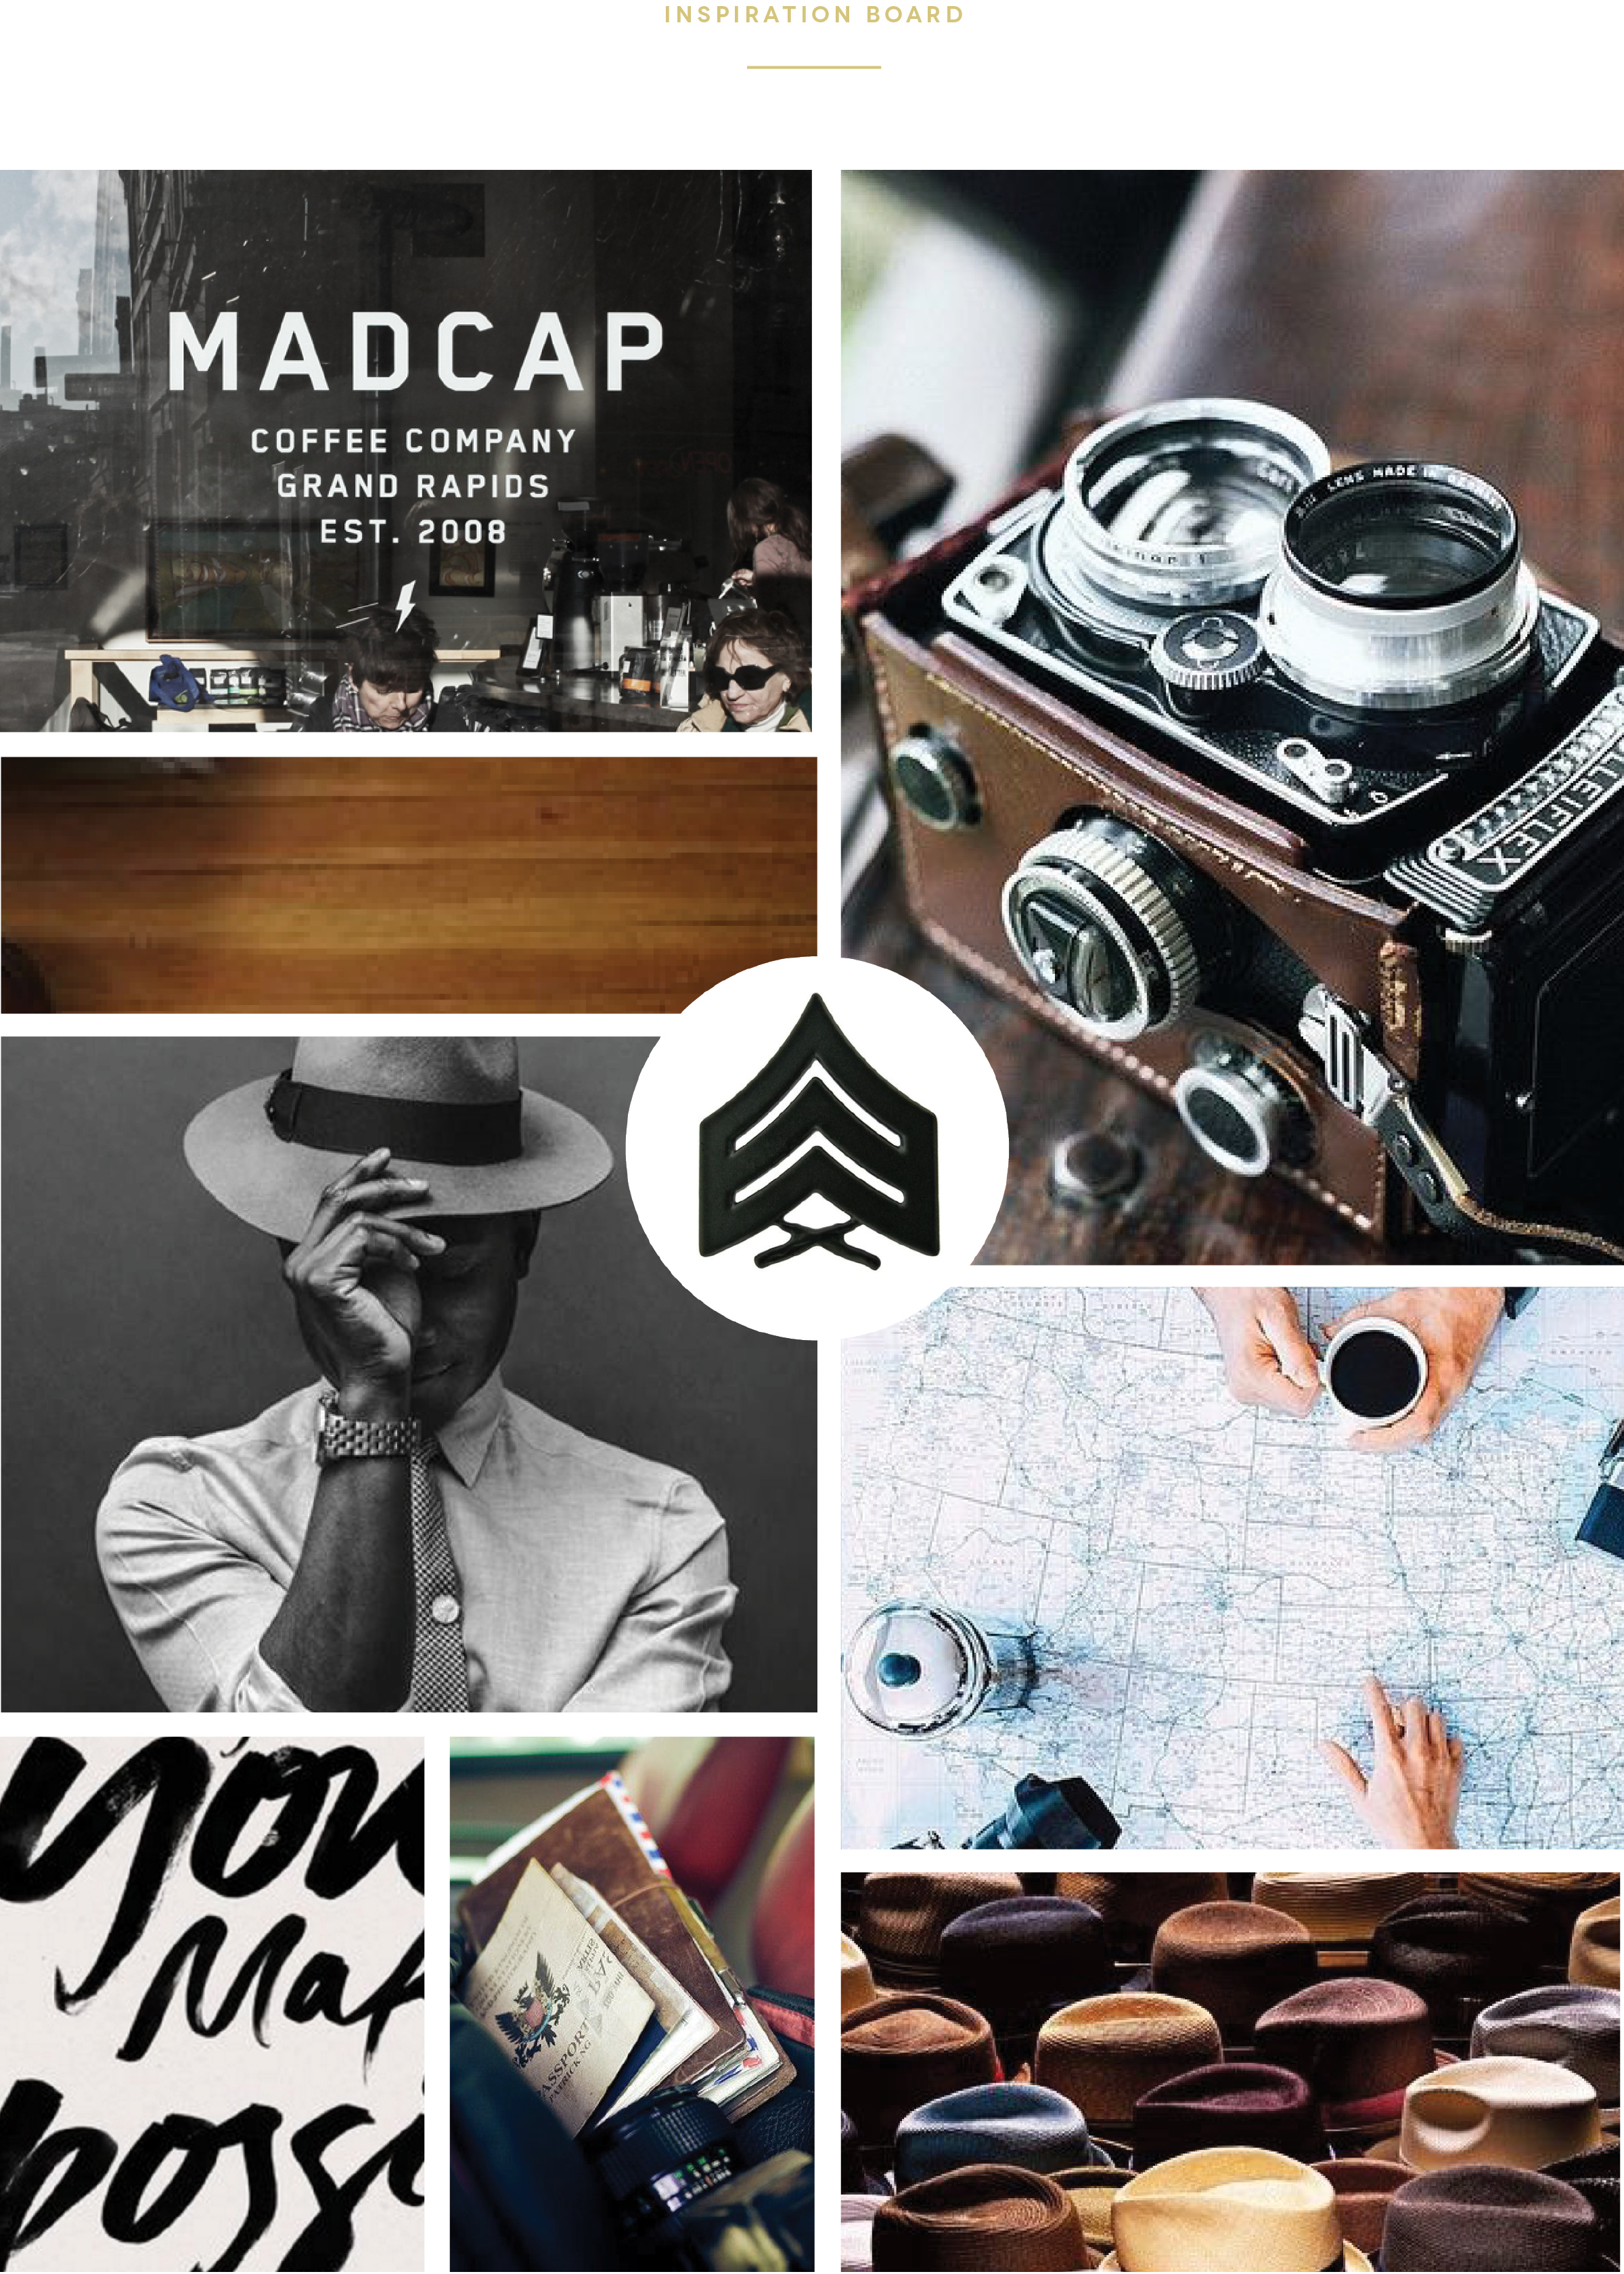 verse and light mood board